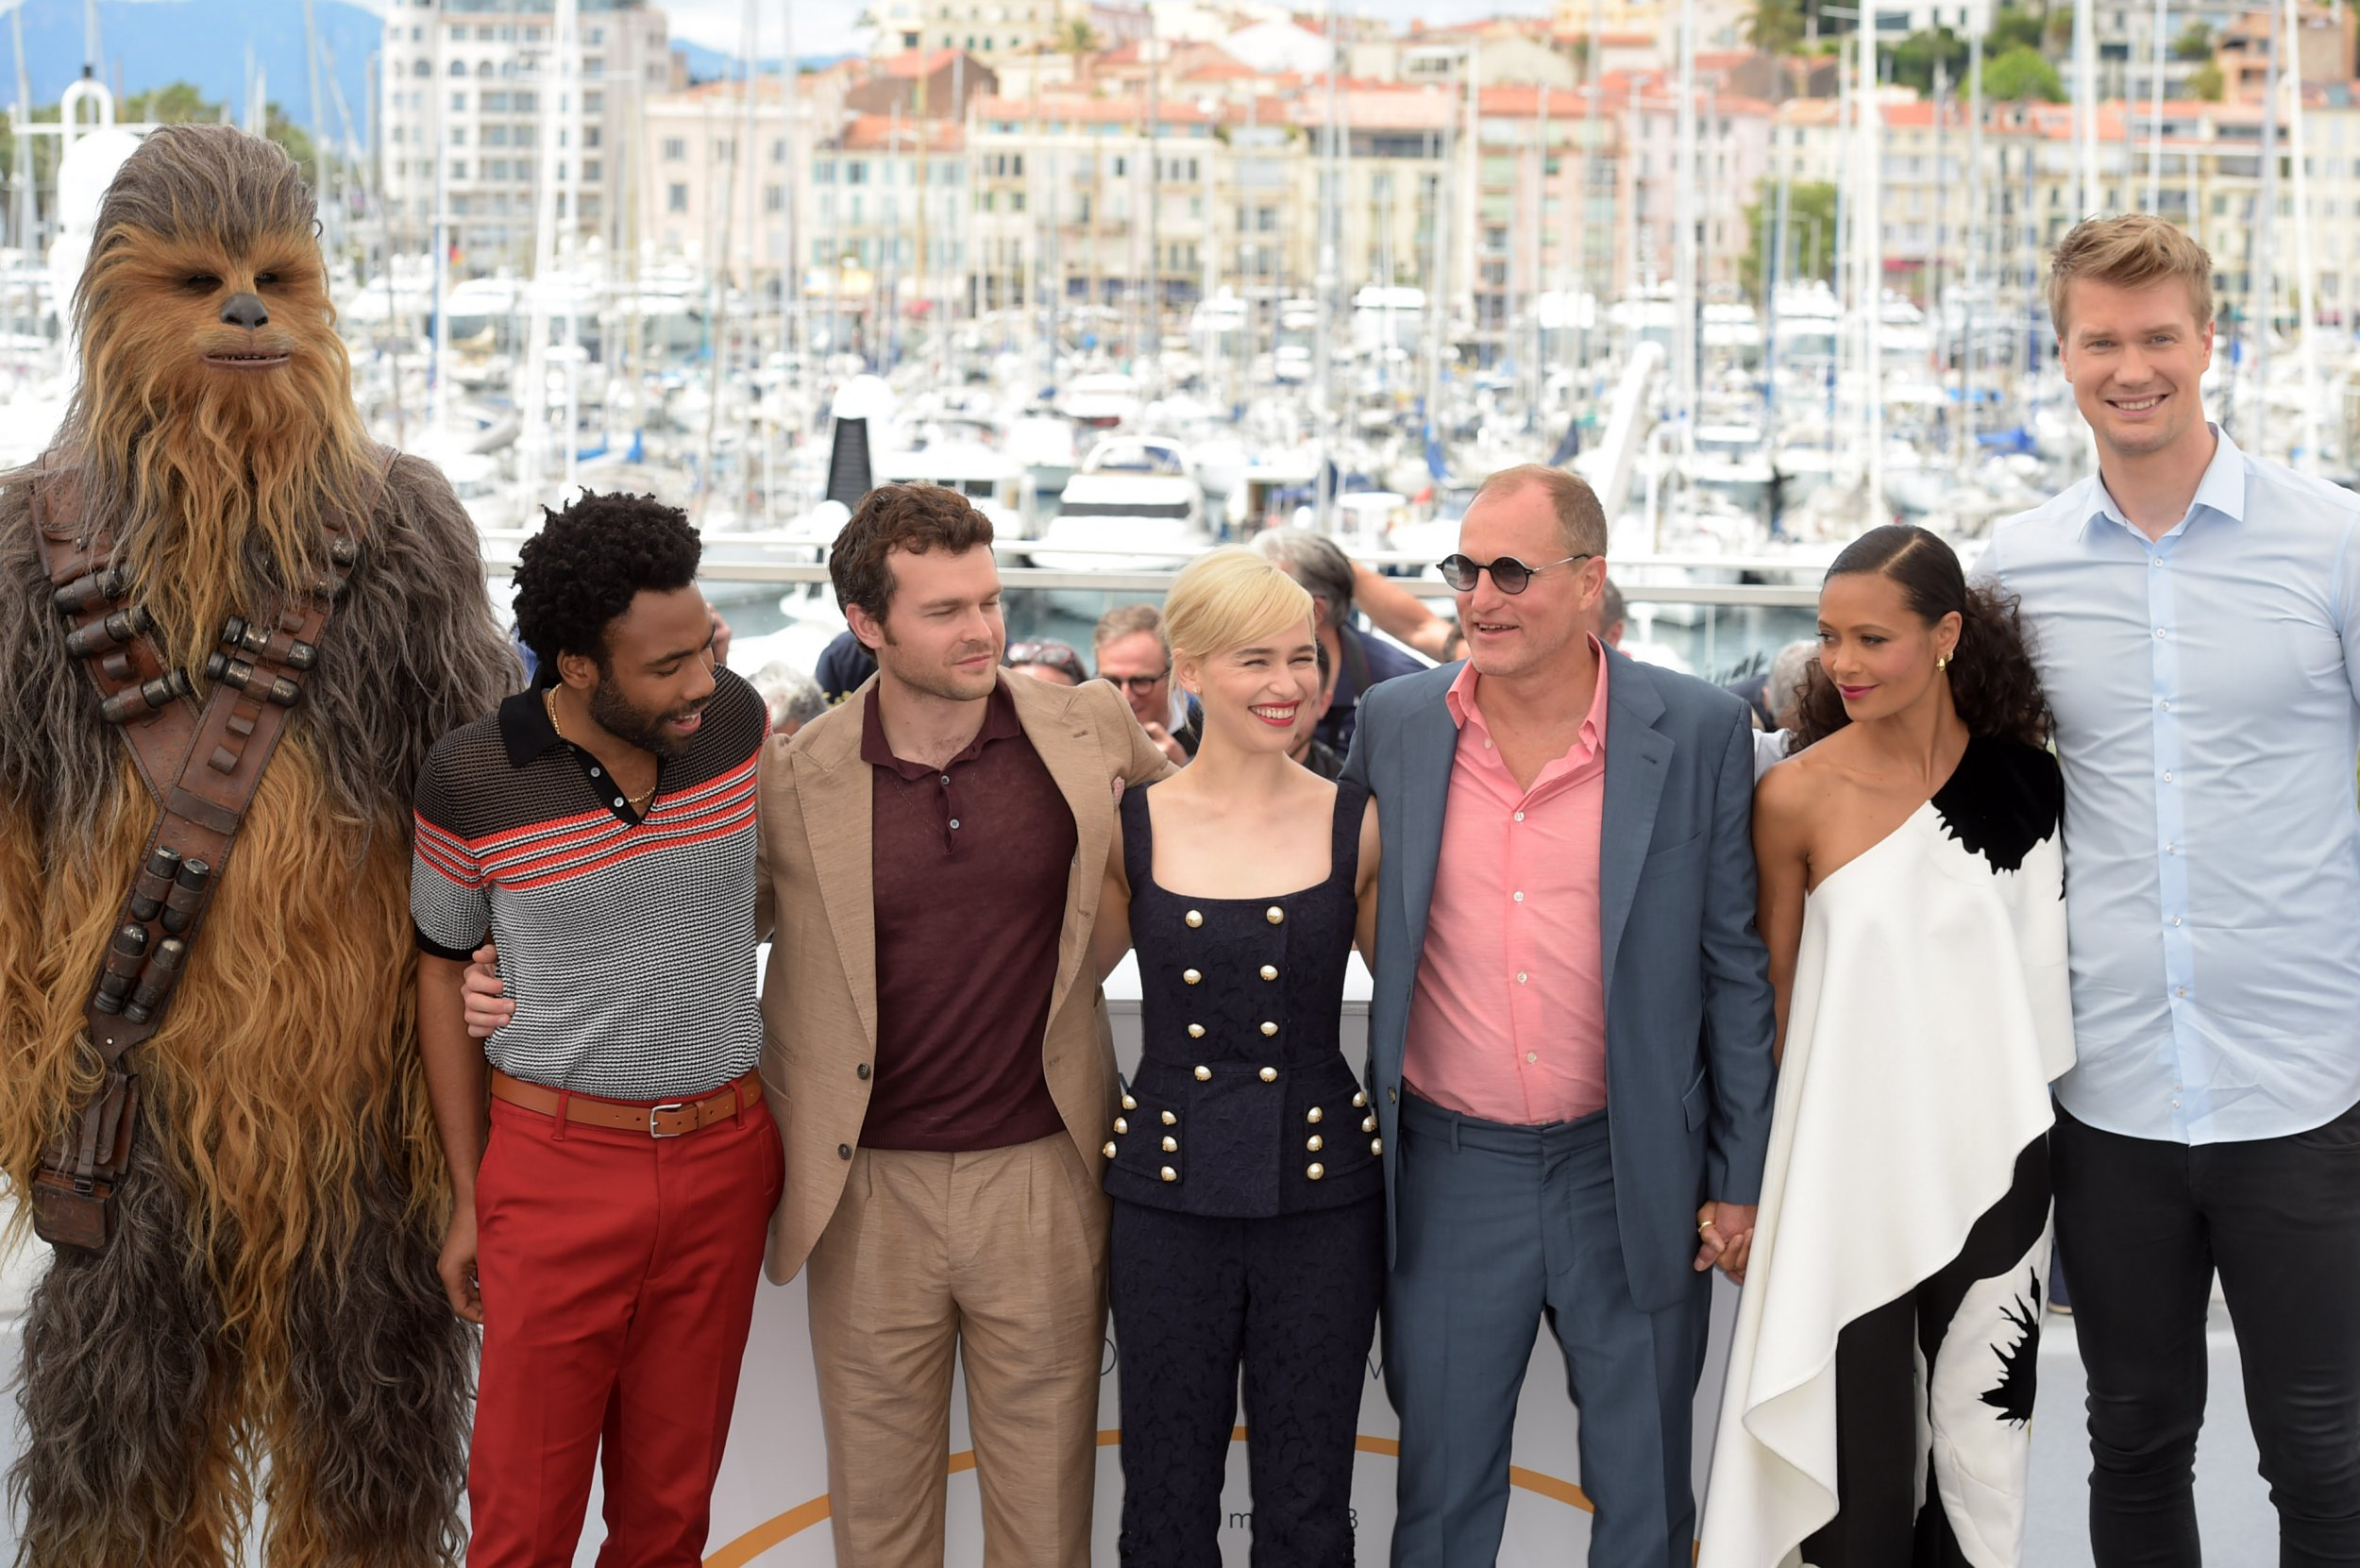 Chewbacca is definitely sweating up a storm as he attends Cannes photocall with Donald Glover and Emilia Clarke